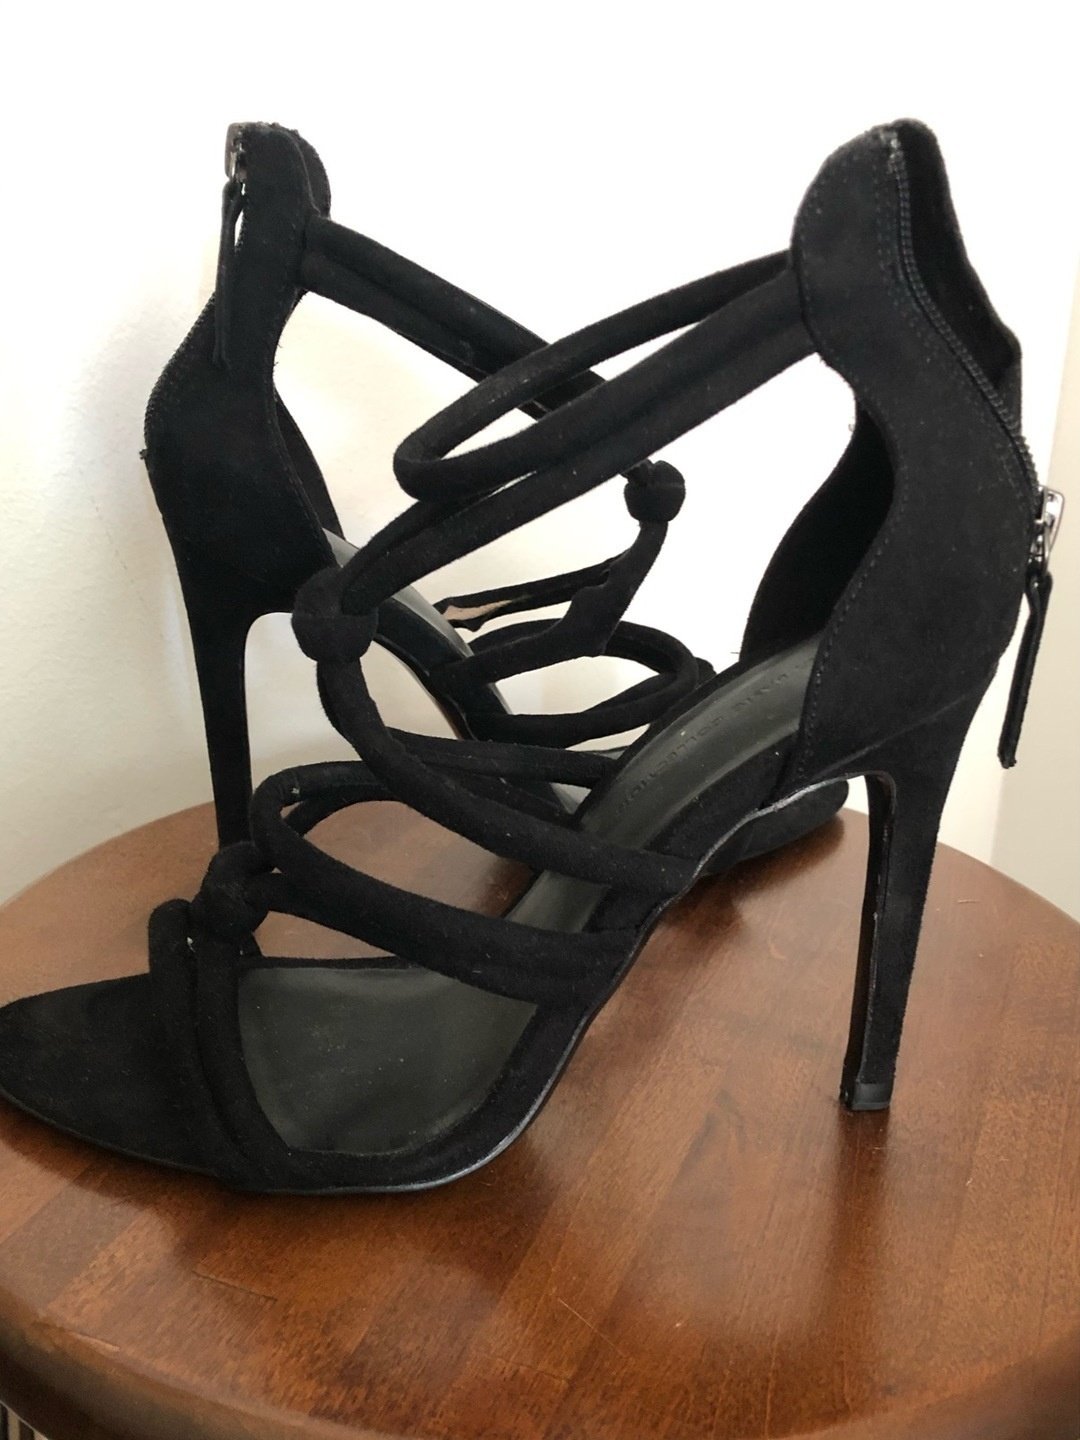 Women's heels & dress shoes - ZARA photo 2